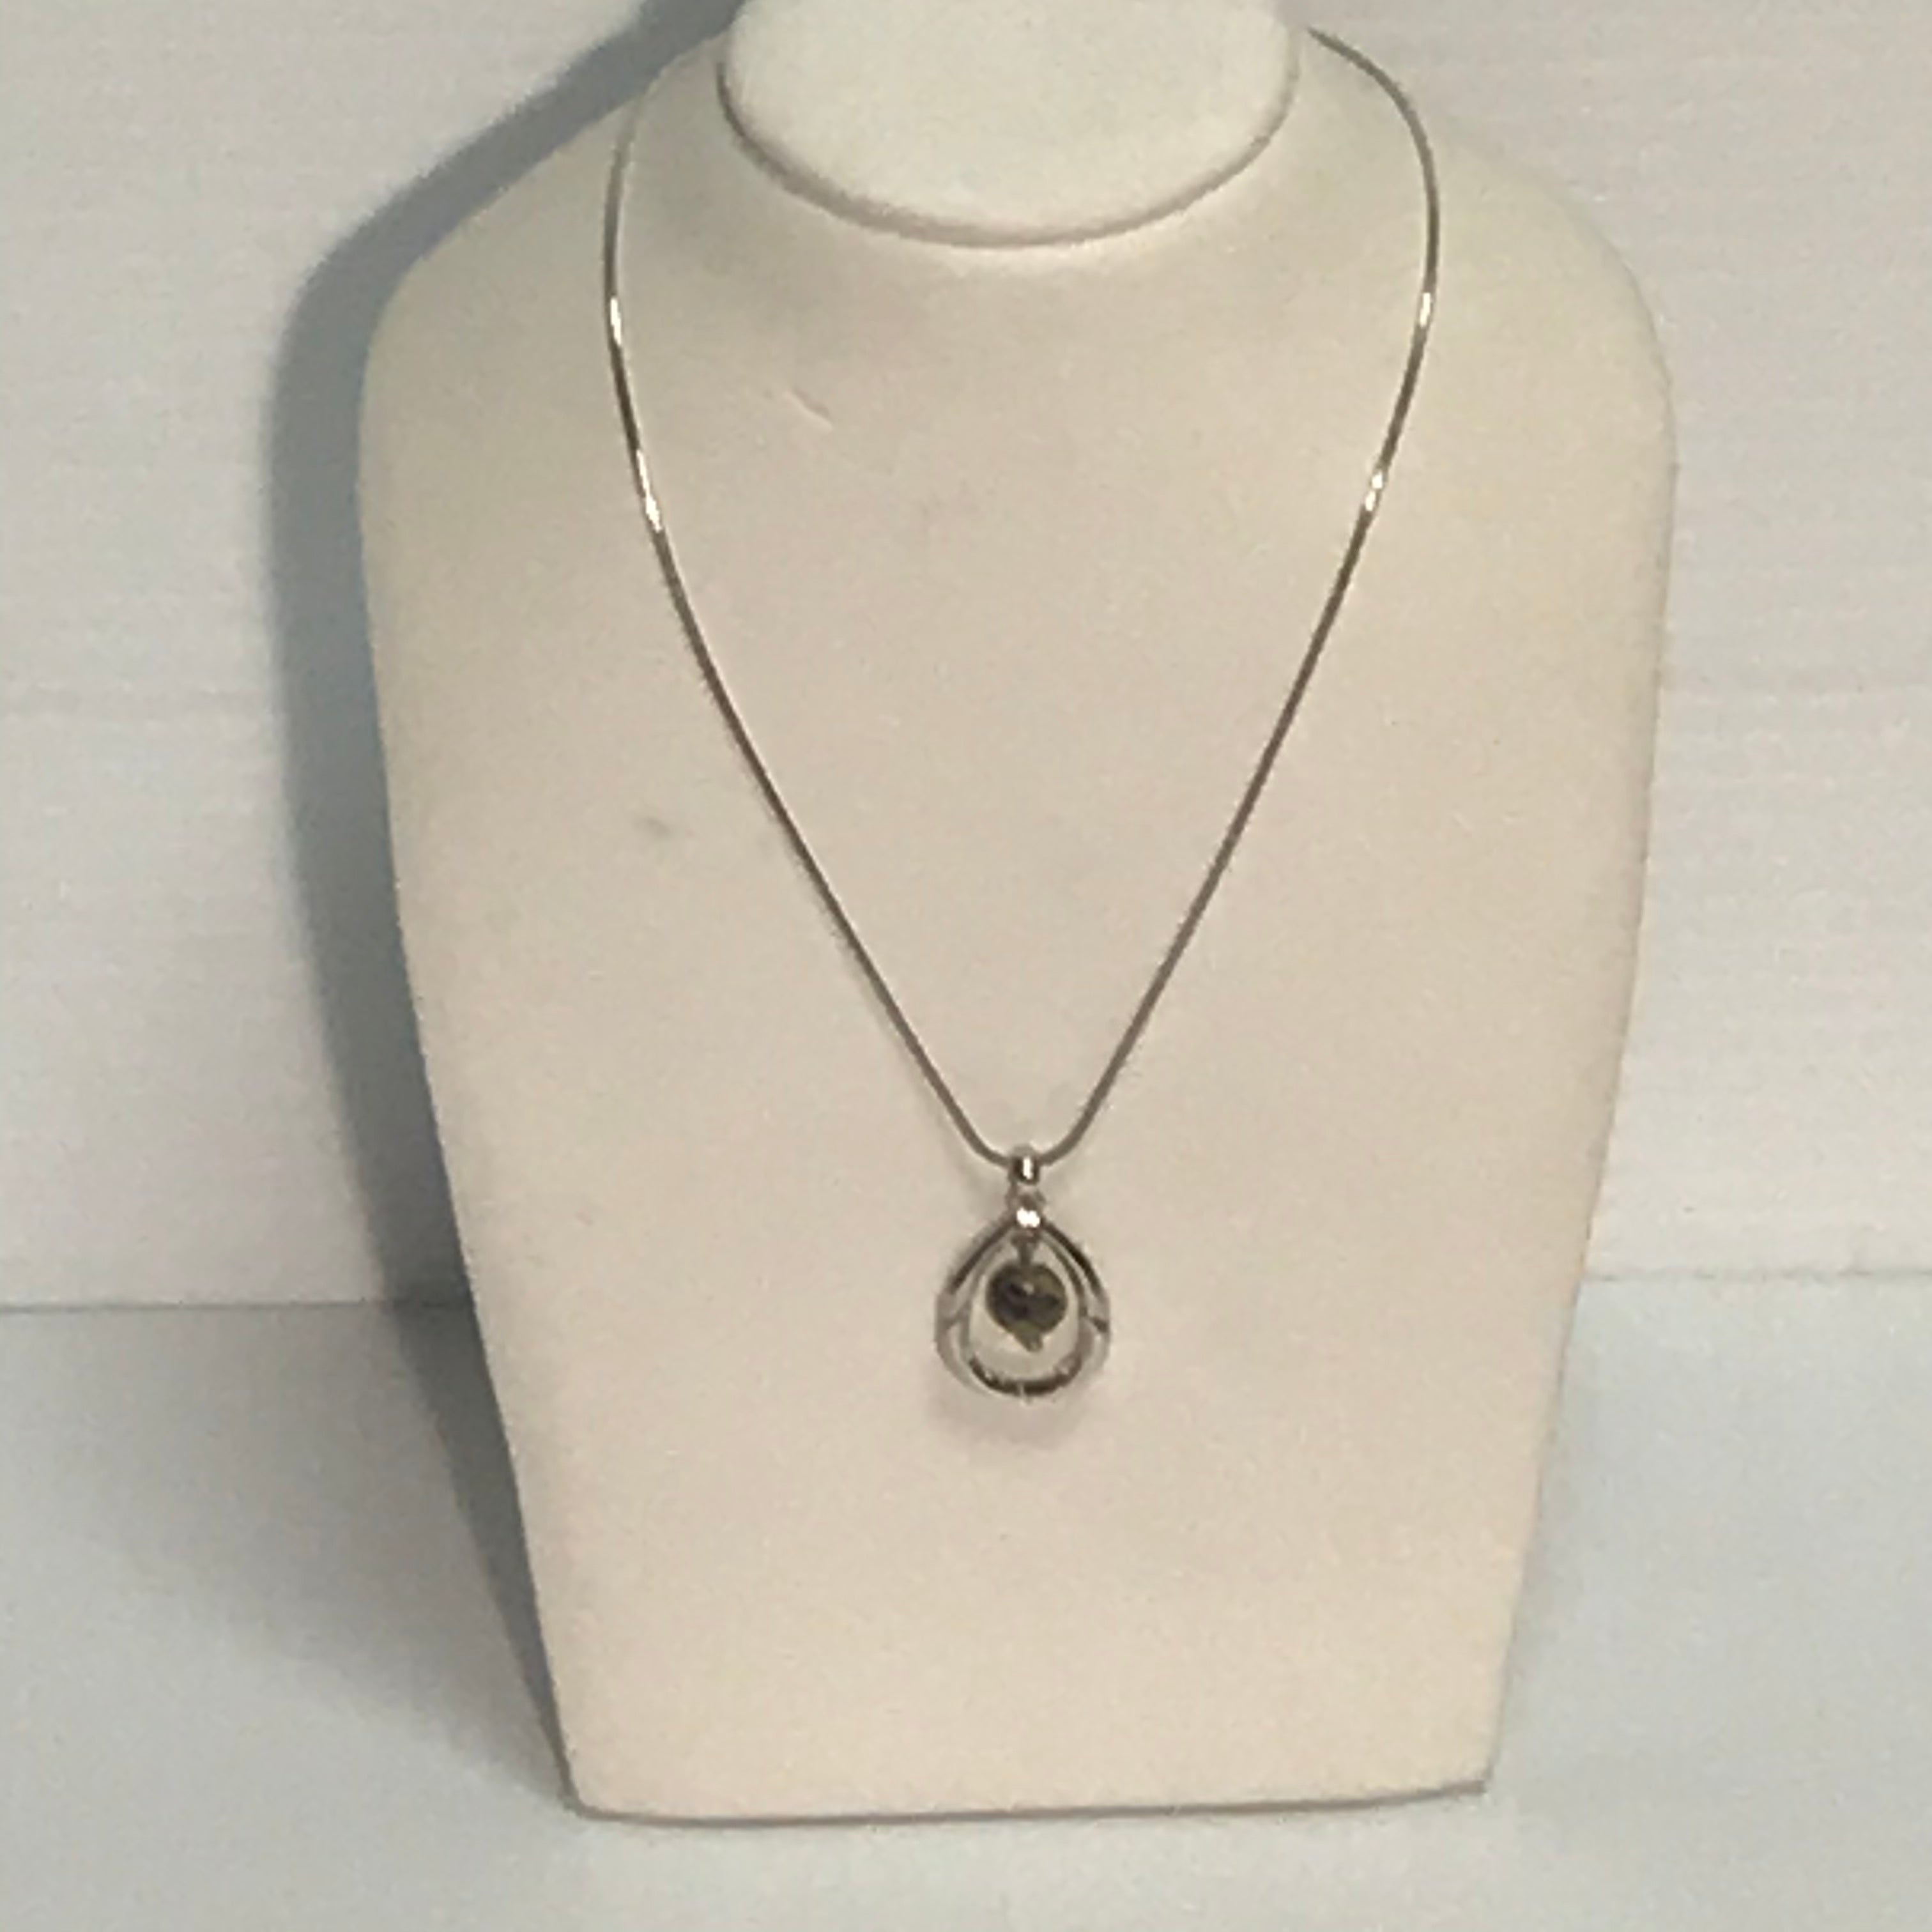 Primary Photo - BRAND: LIA SOPHIA JEWELRY<BR>STYLE: NECKLACE<BR>COLOR: SILVER  AND TAUPE <BR>SKU: 239-23911-66122